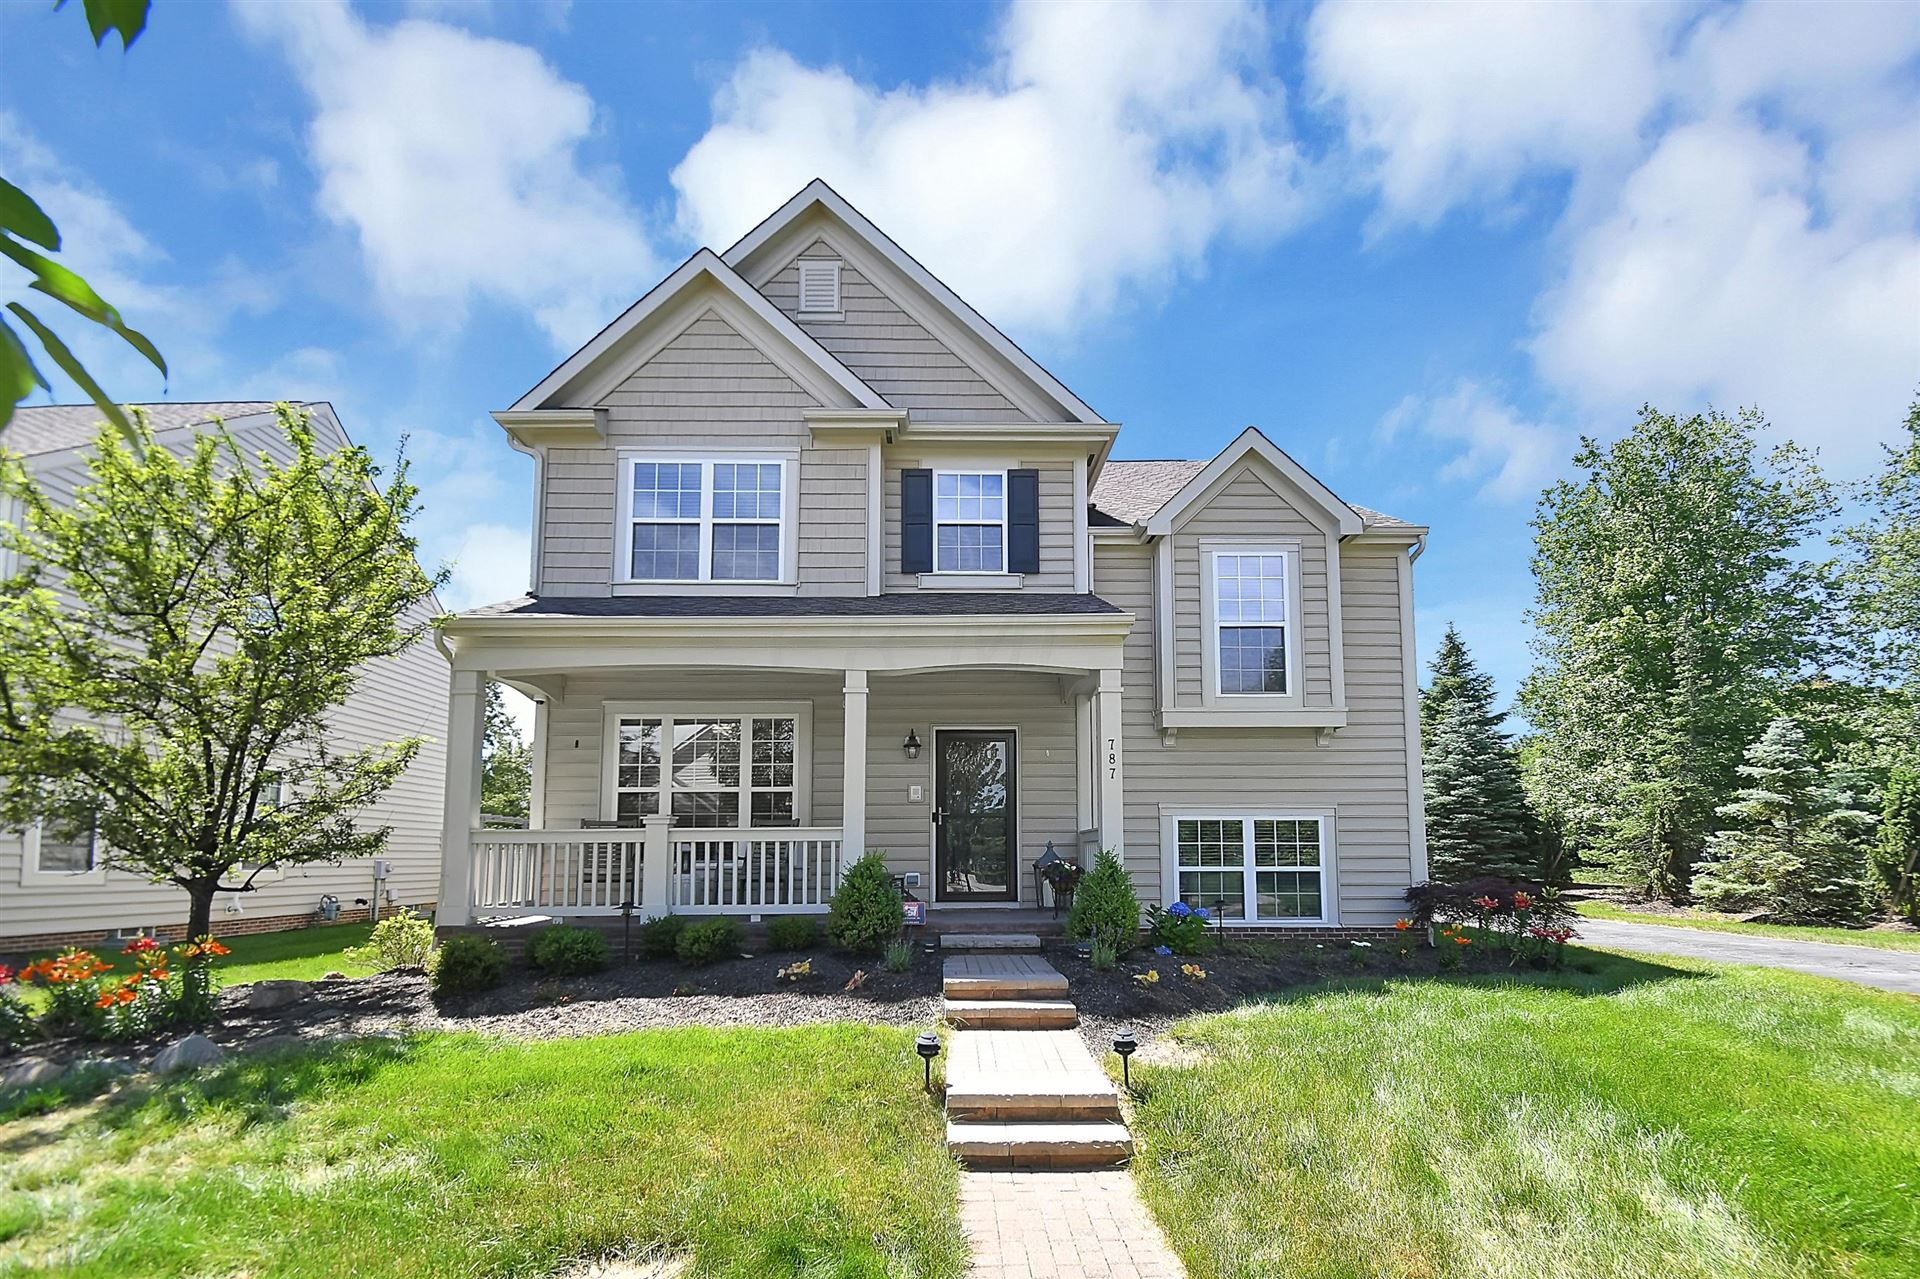 Photo of 787 Paddlecreek Drive, Westerville, OH 43082 (MLS # 221021820)